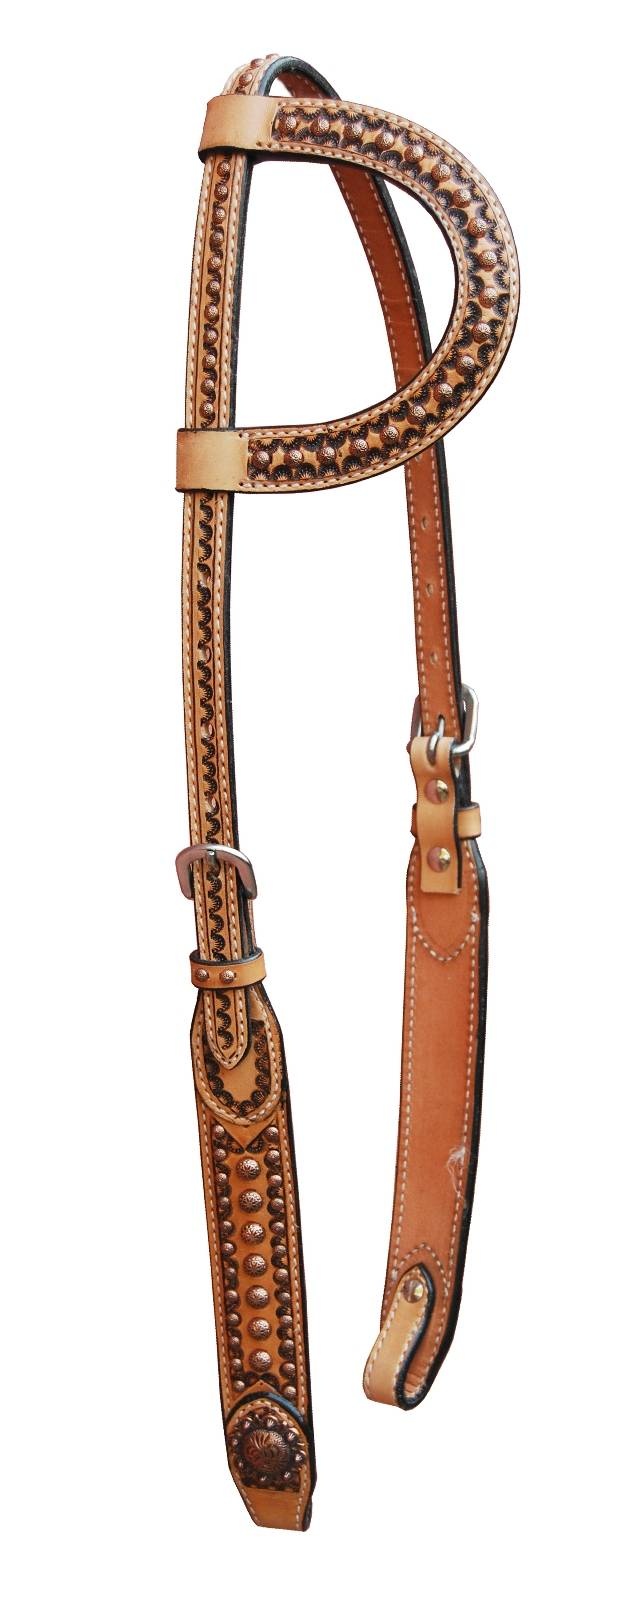 Turn-Two Equine Galveston One Ear Headstall